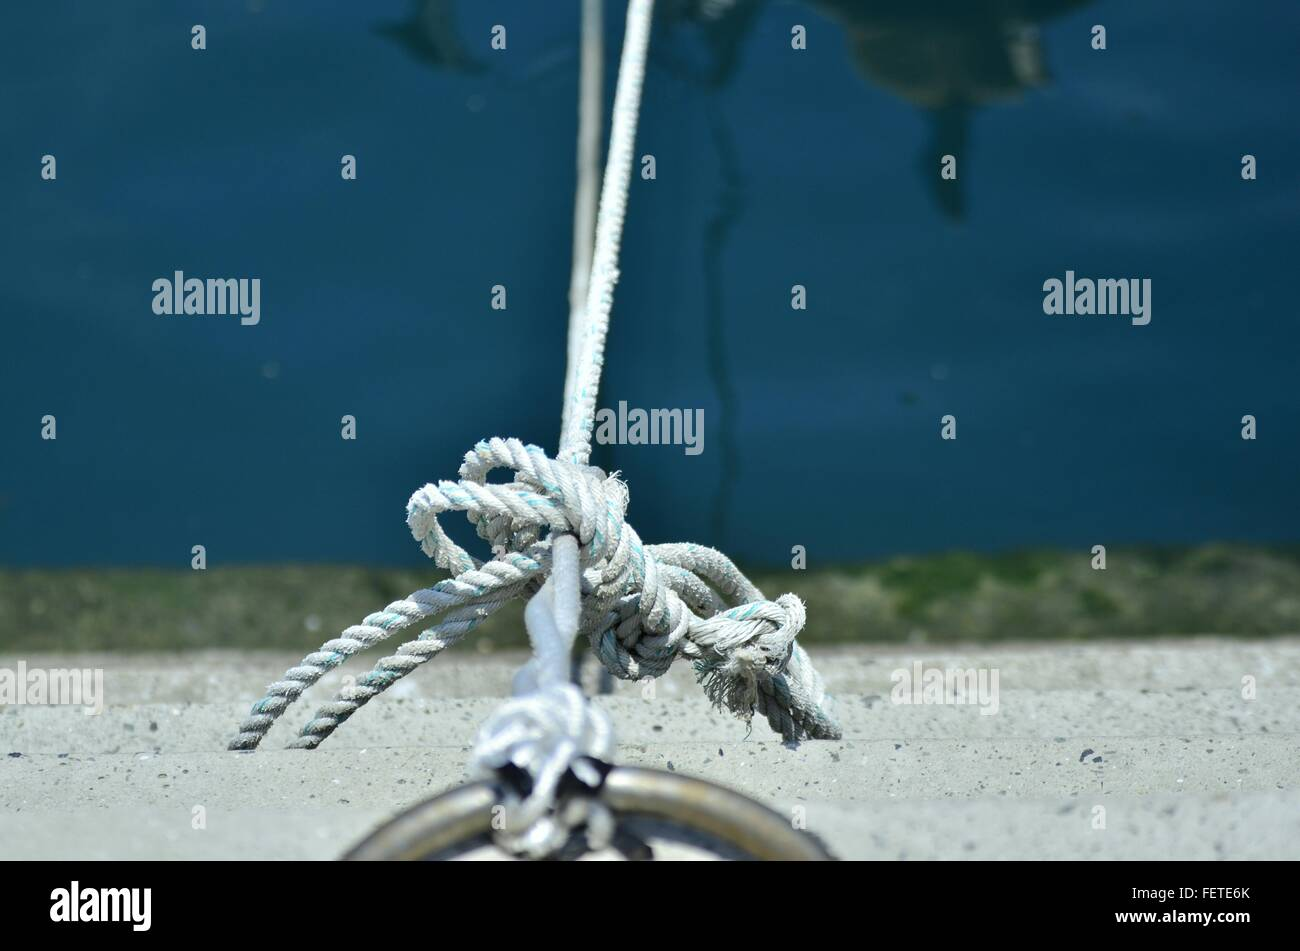 Tied Up Rope - Stock Image